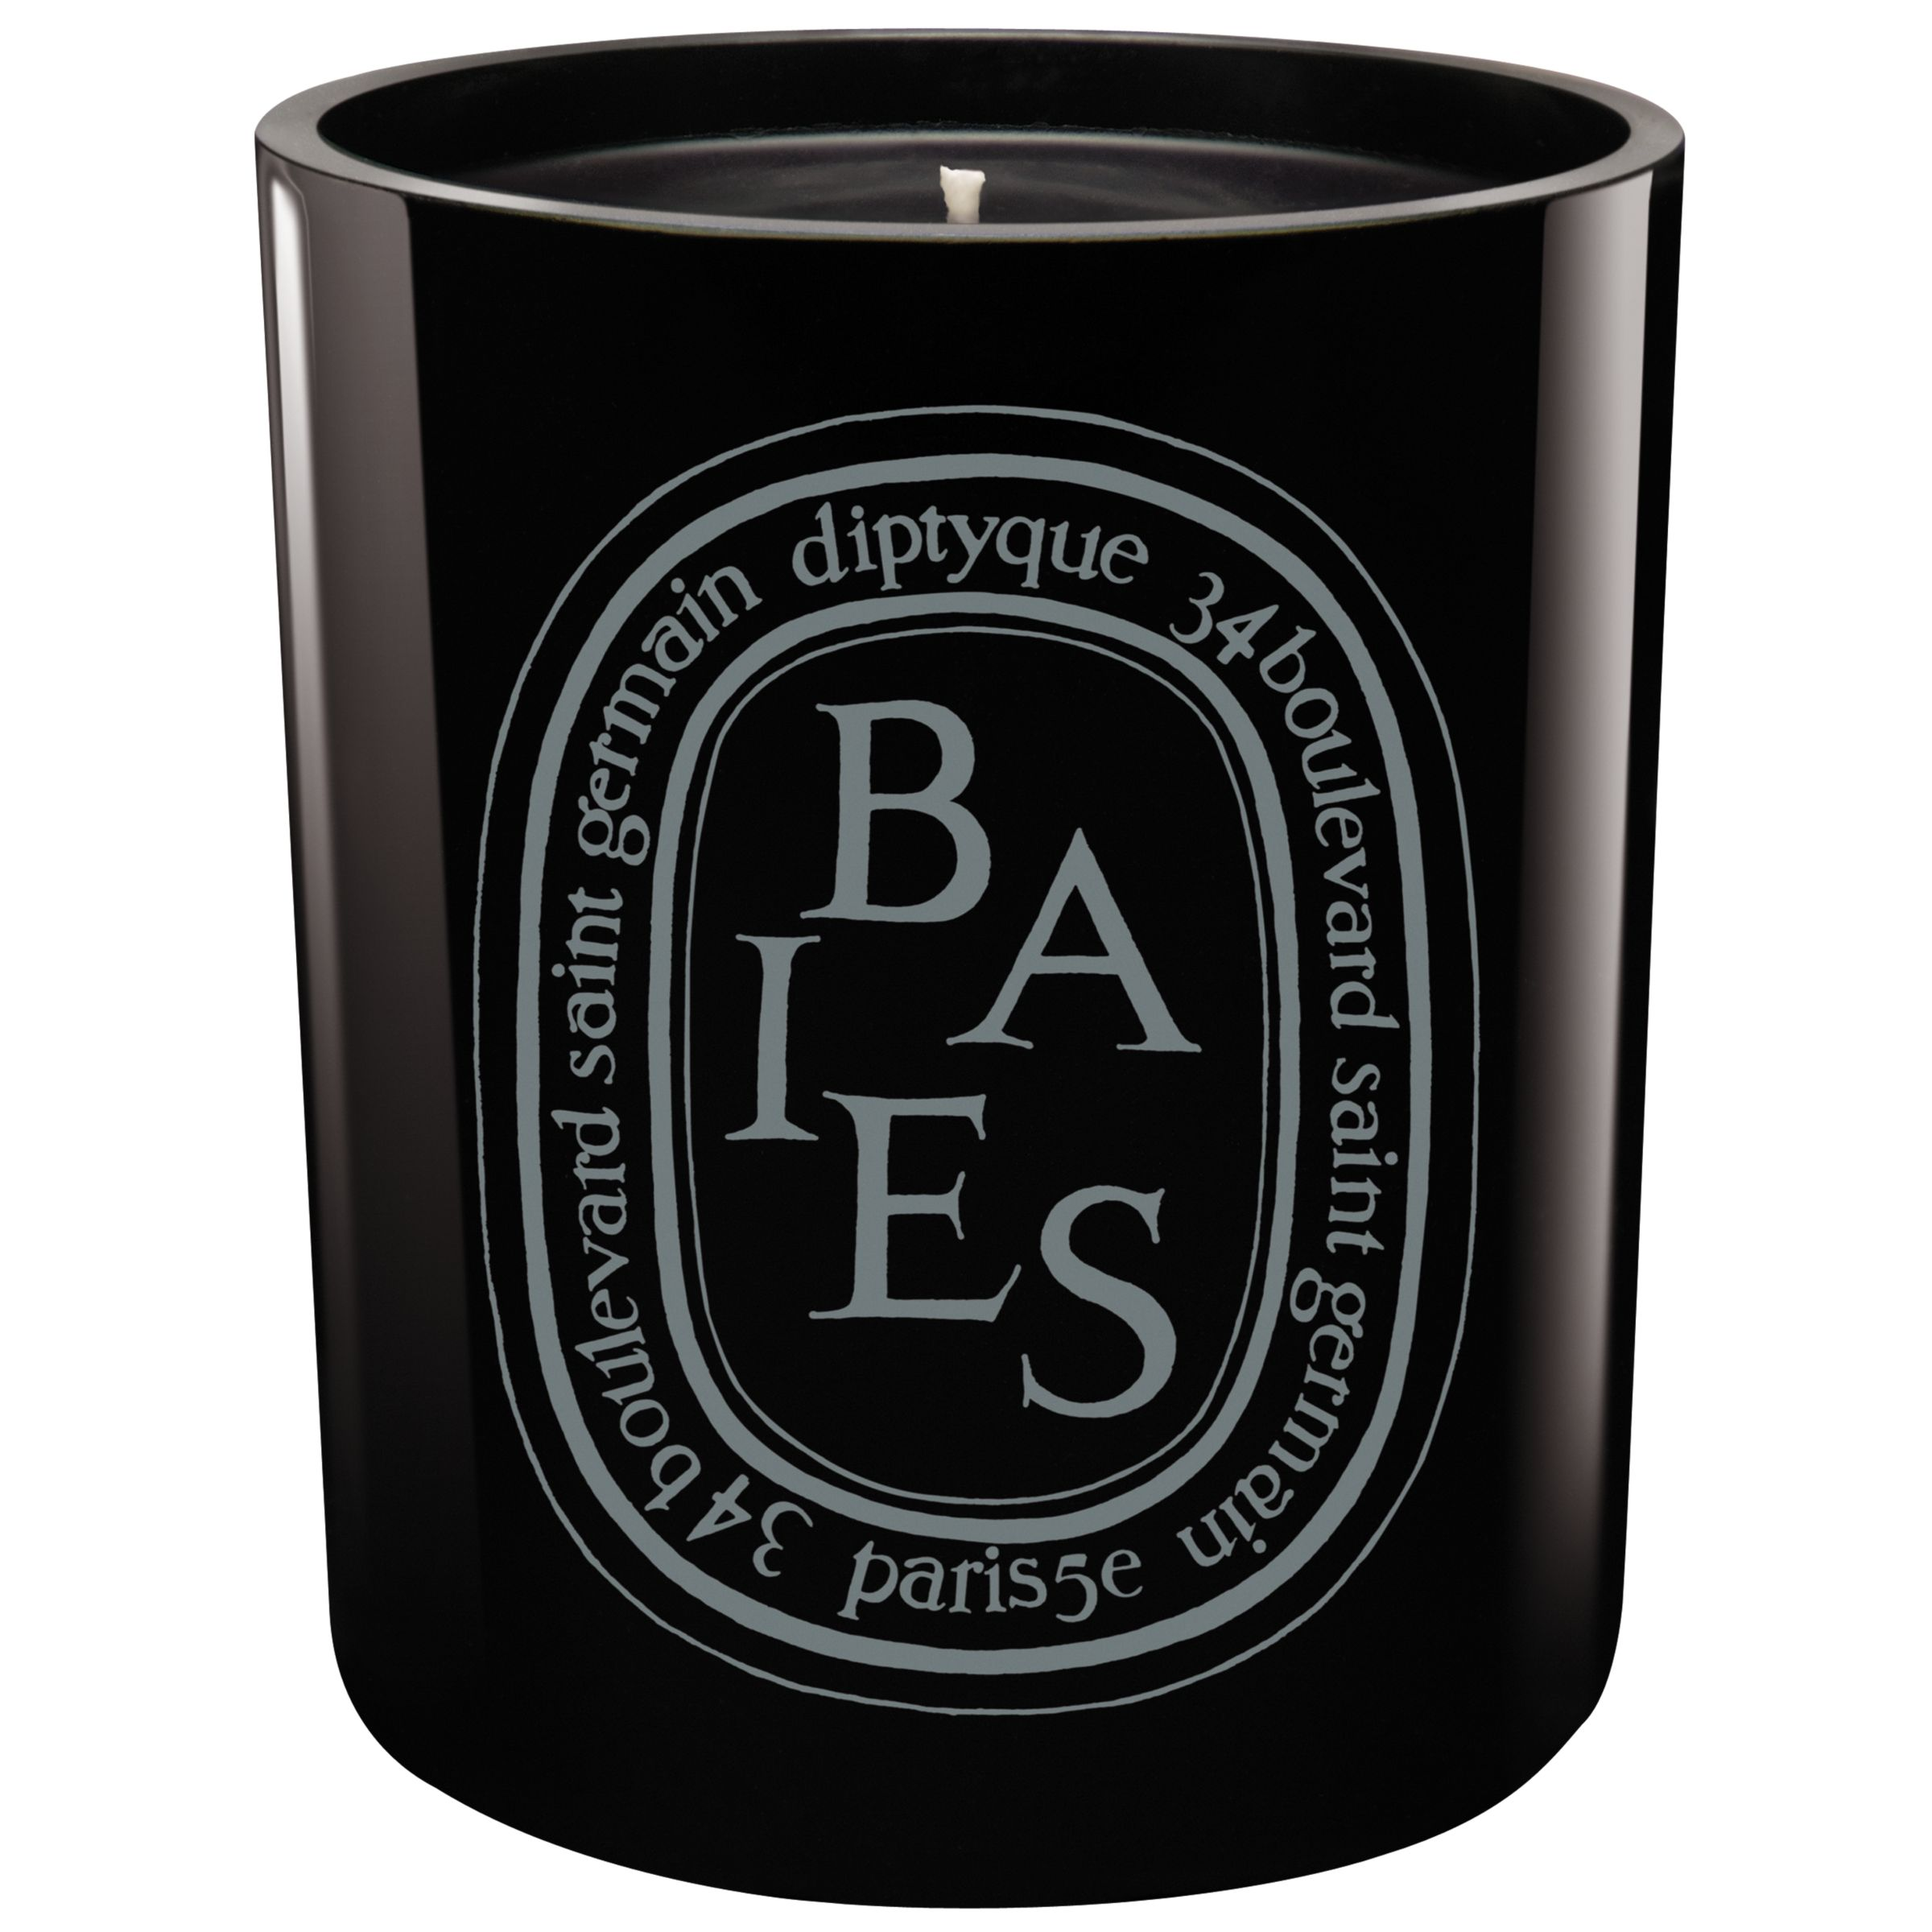 Diptyque Baies Noire Scented Candle, 20g